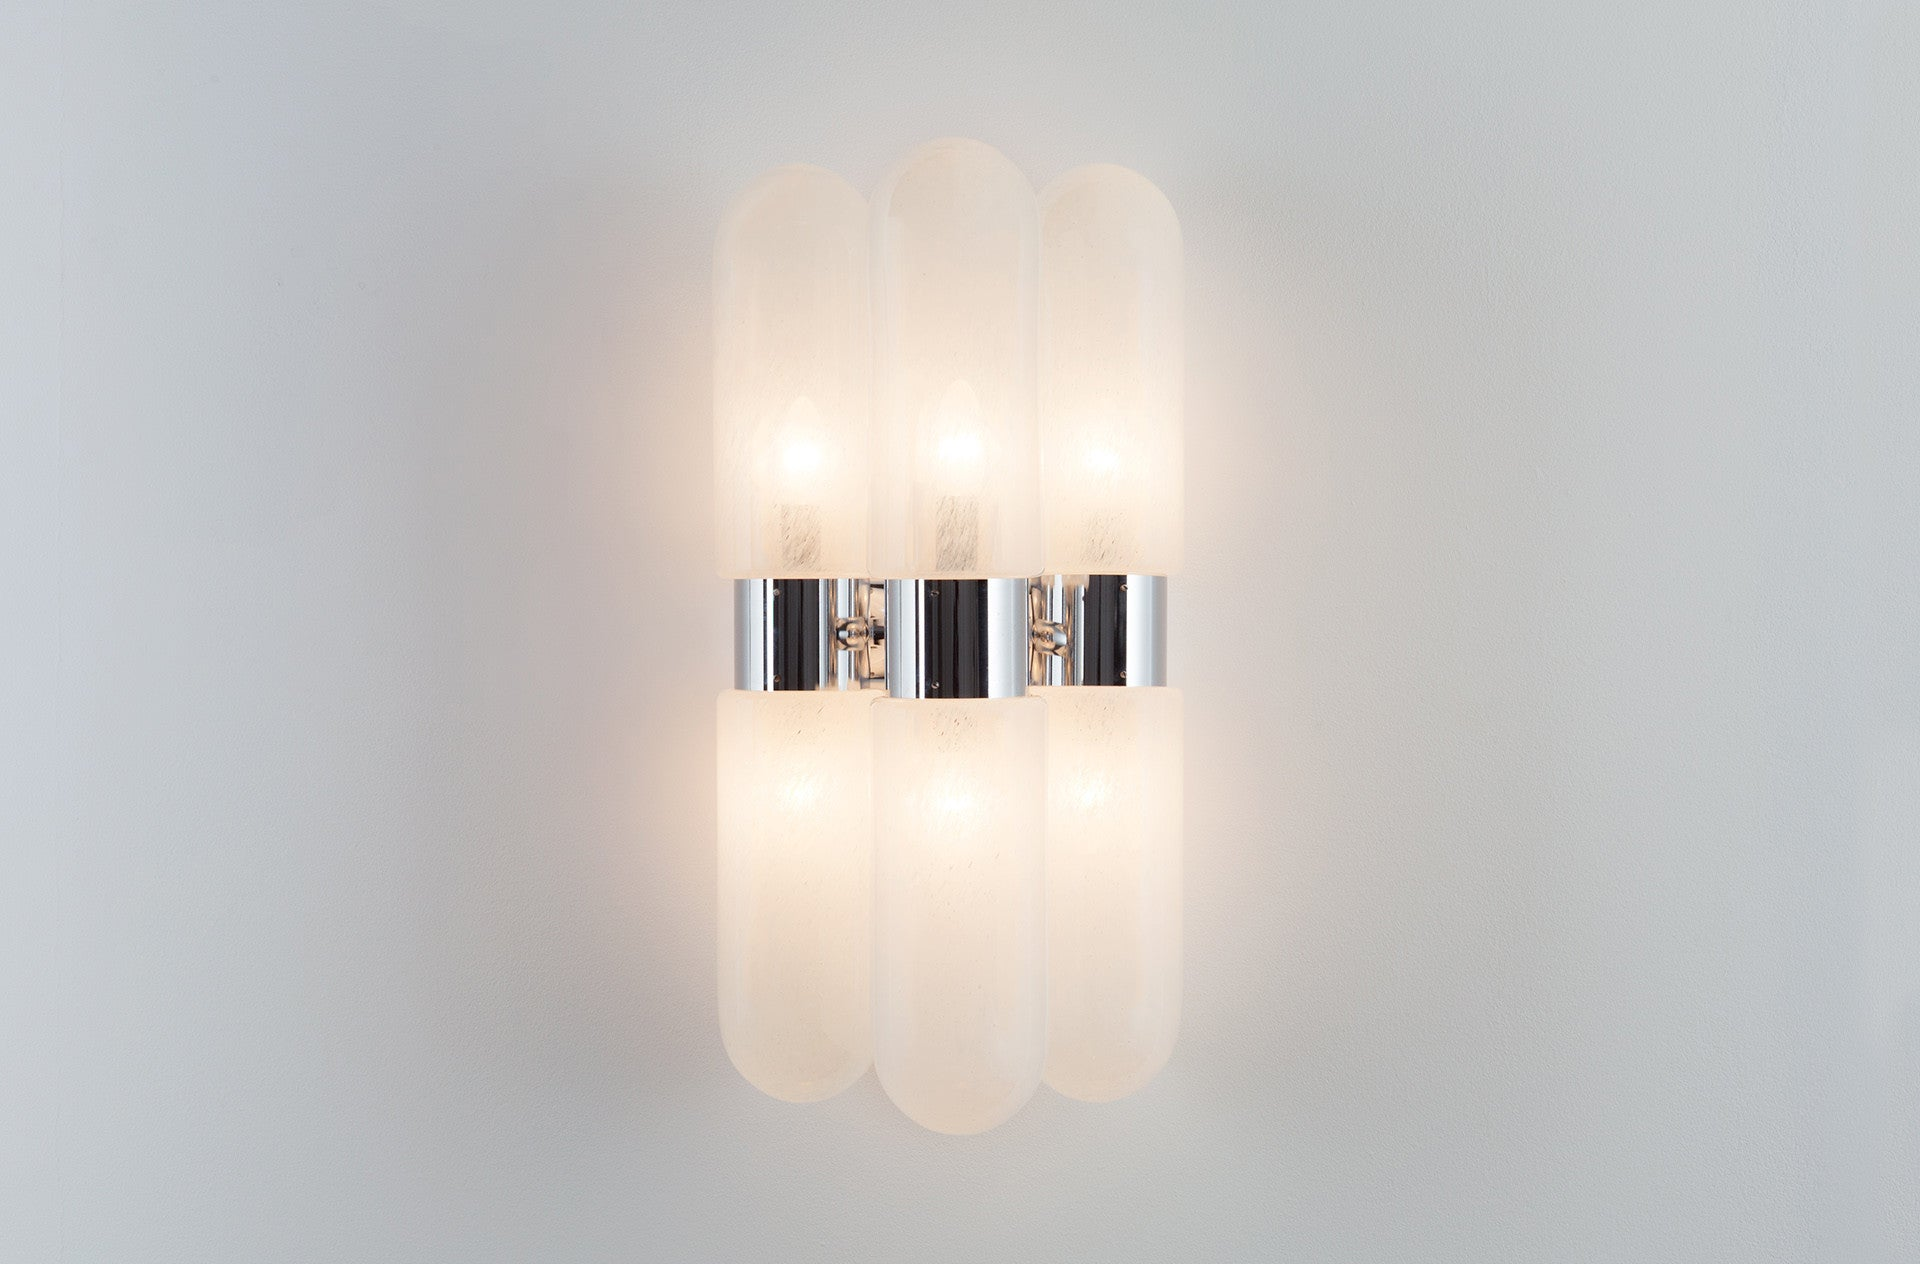 Italian Tubular wall sconces